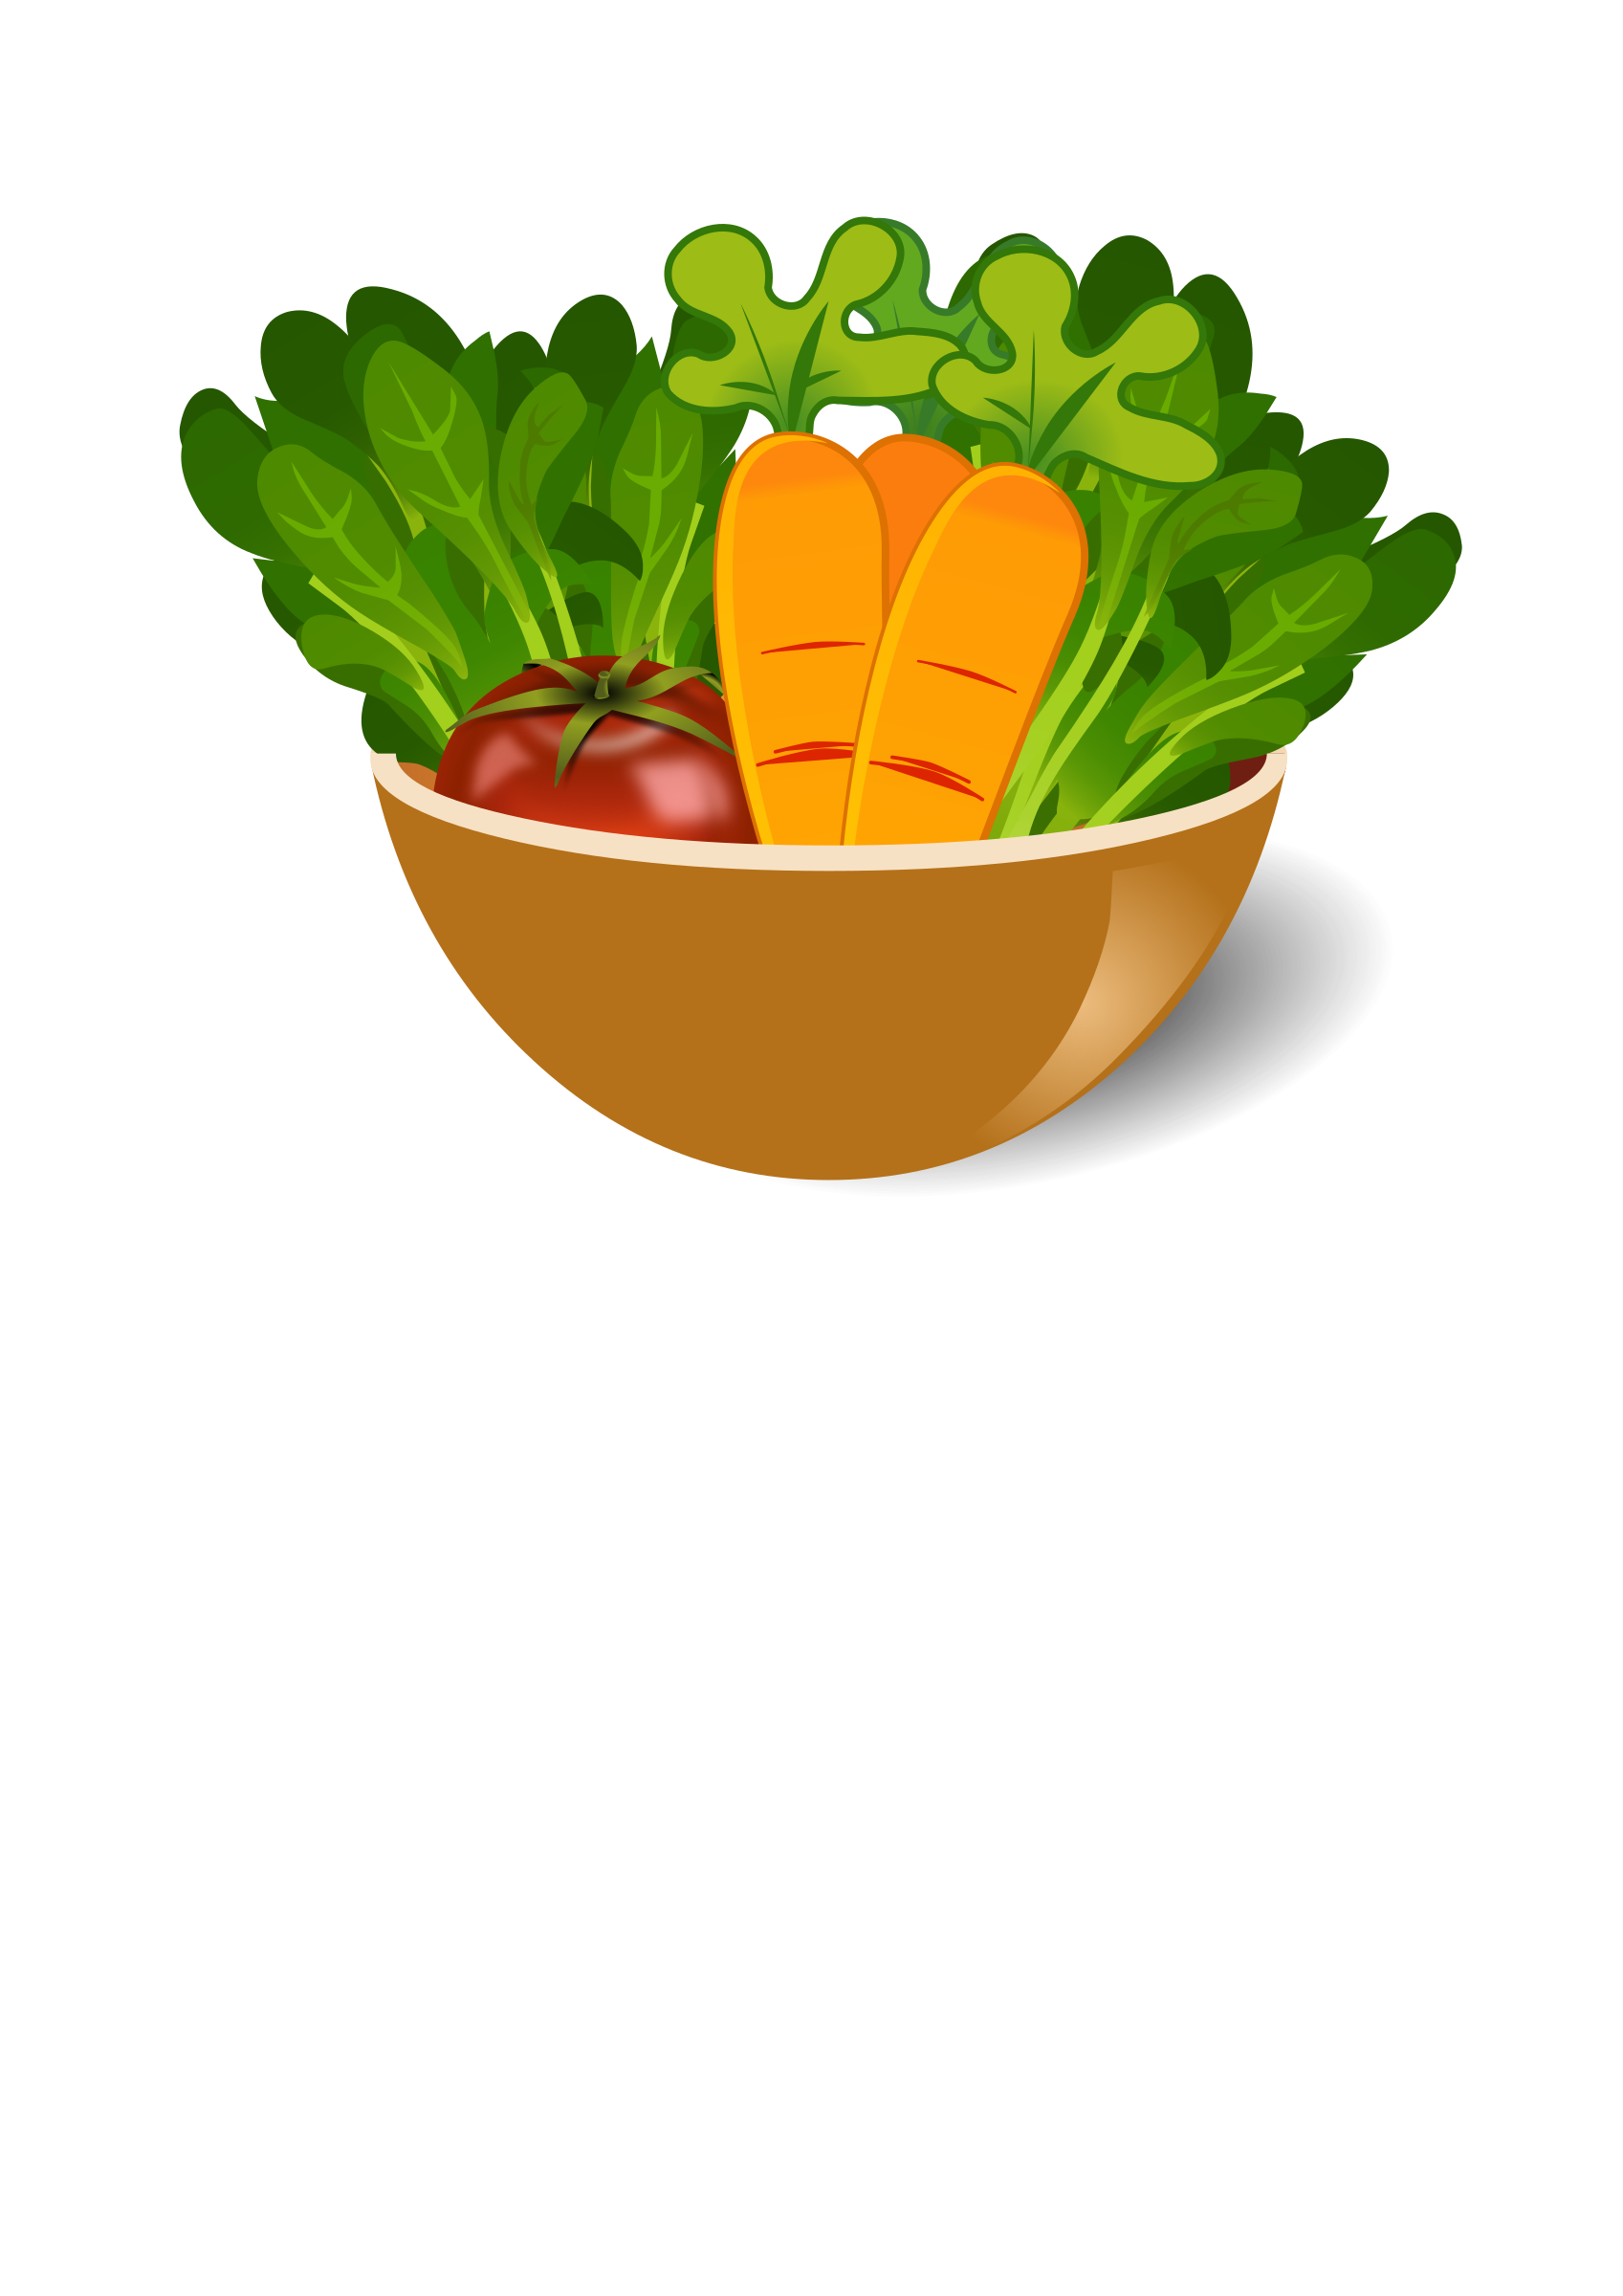 vegetable bowl by cg4share